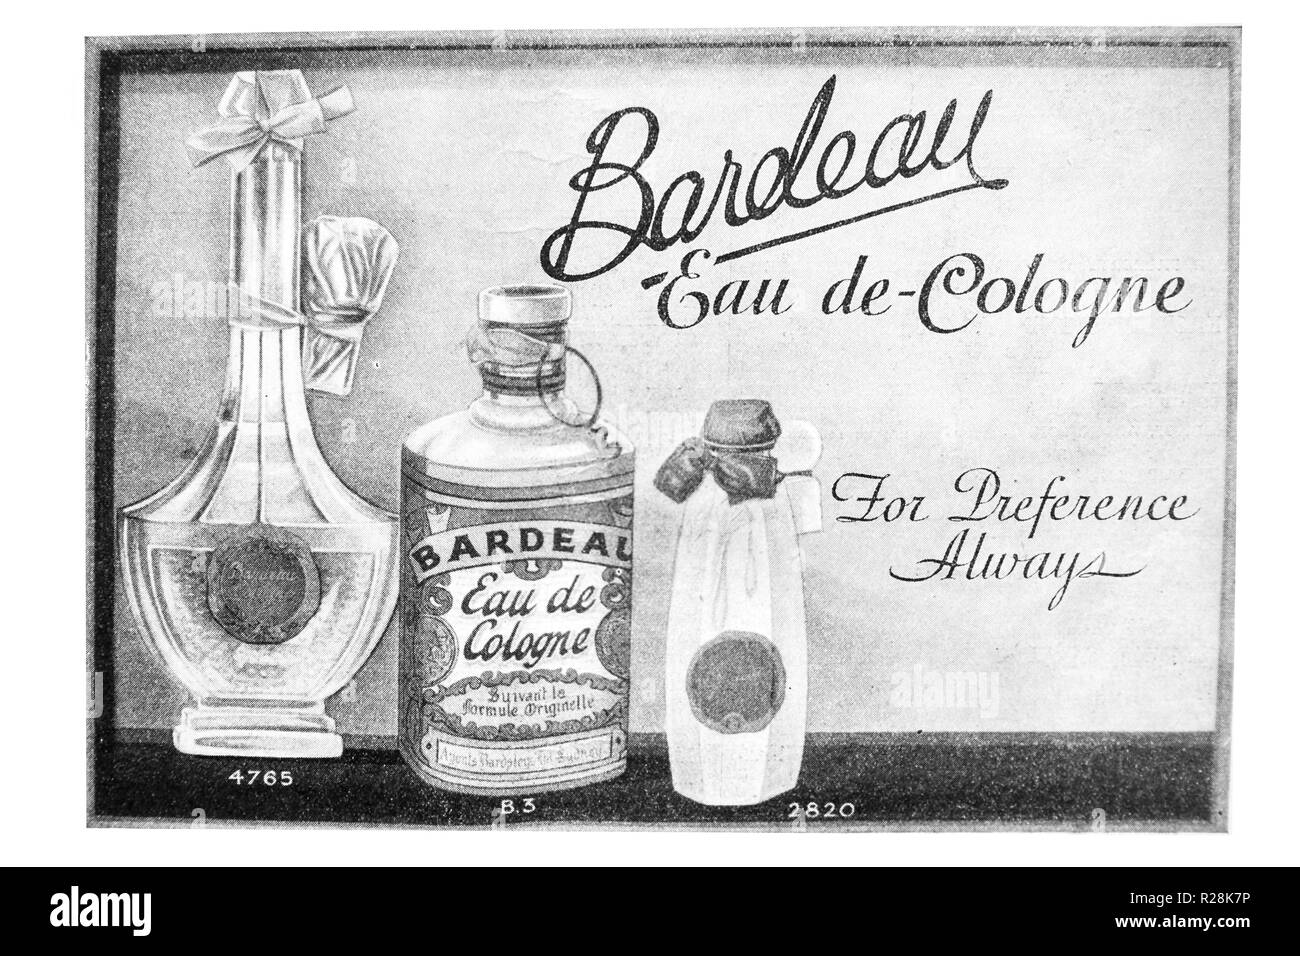 Three bottles of Bardeau Eau de Cologne advertisement in 1932 'The Sydney Mail' newspaper. - Stock Image